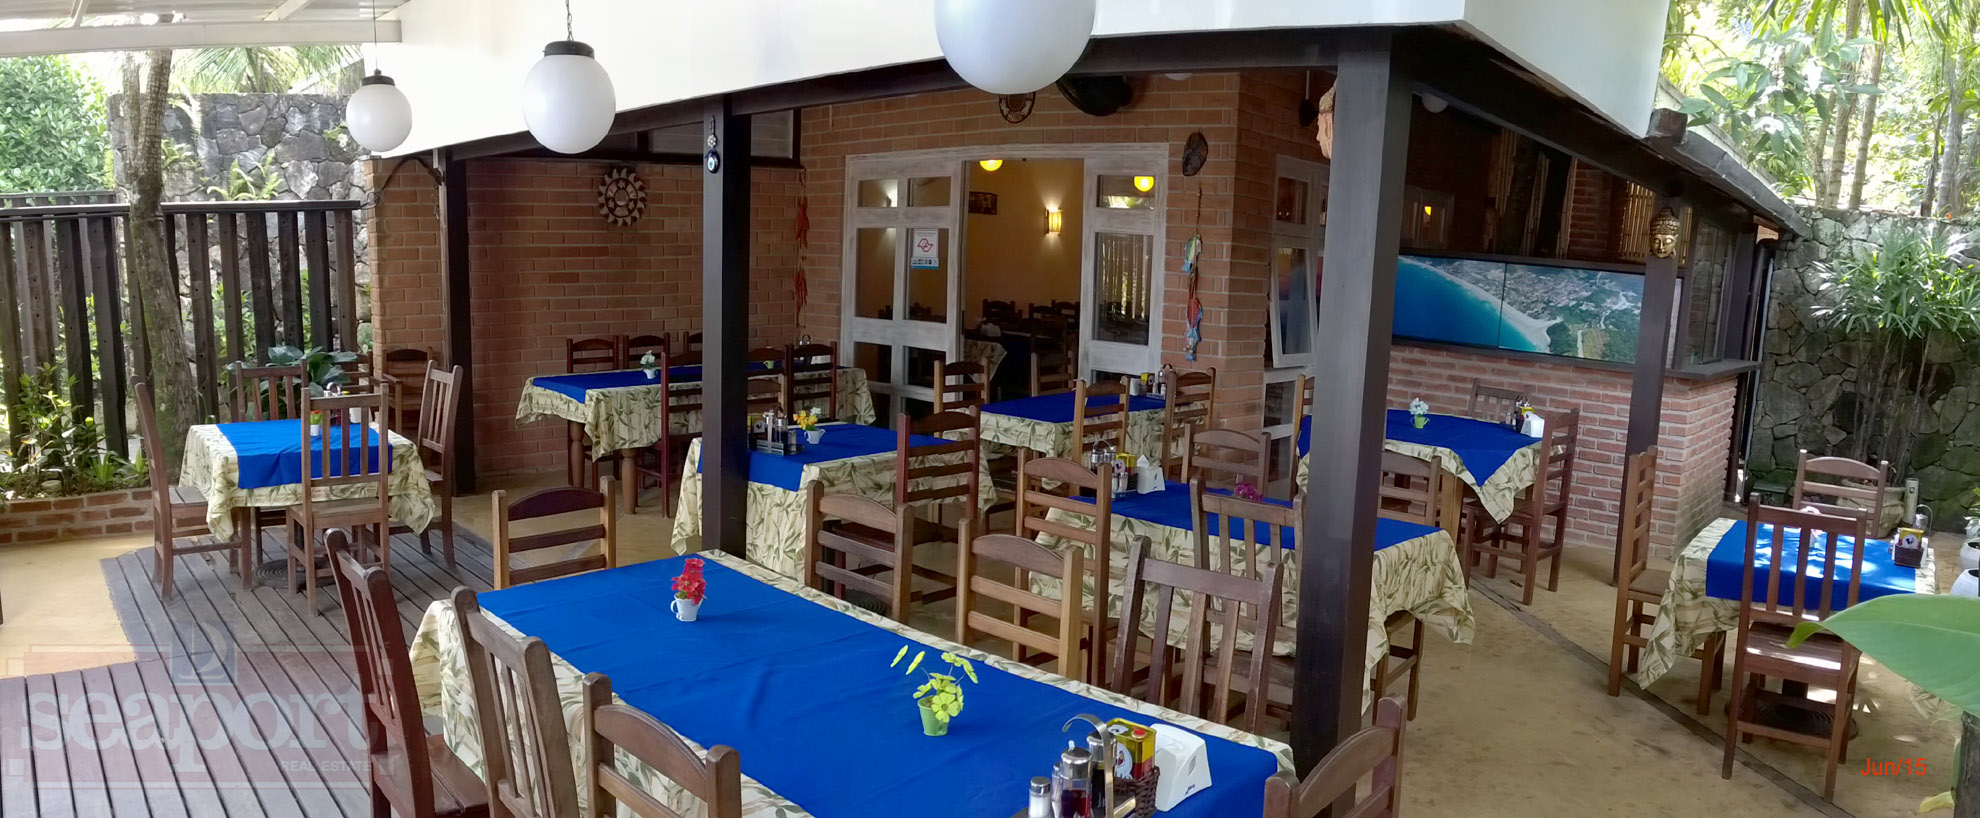 Restaurante do condomínio